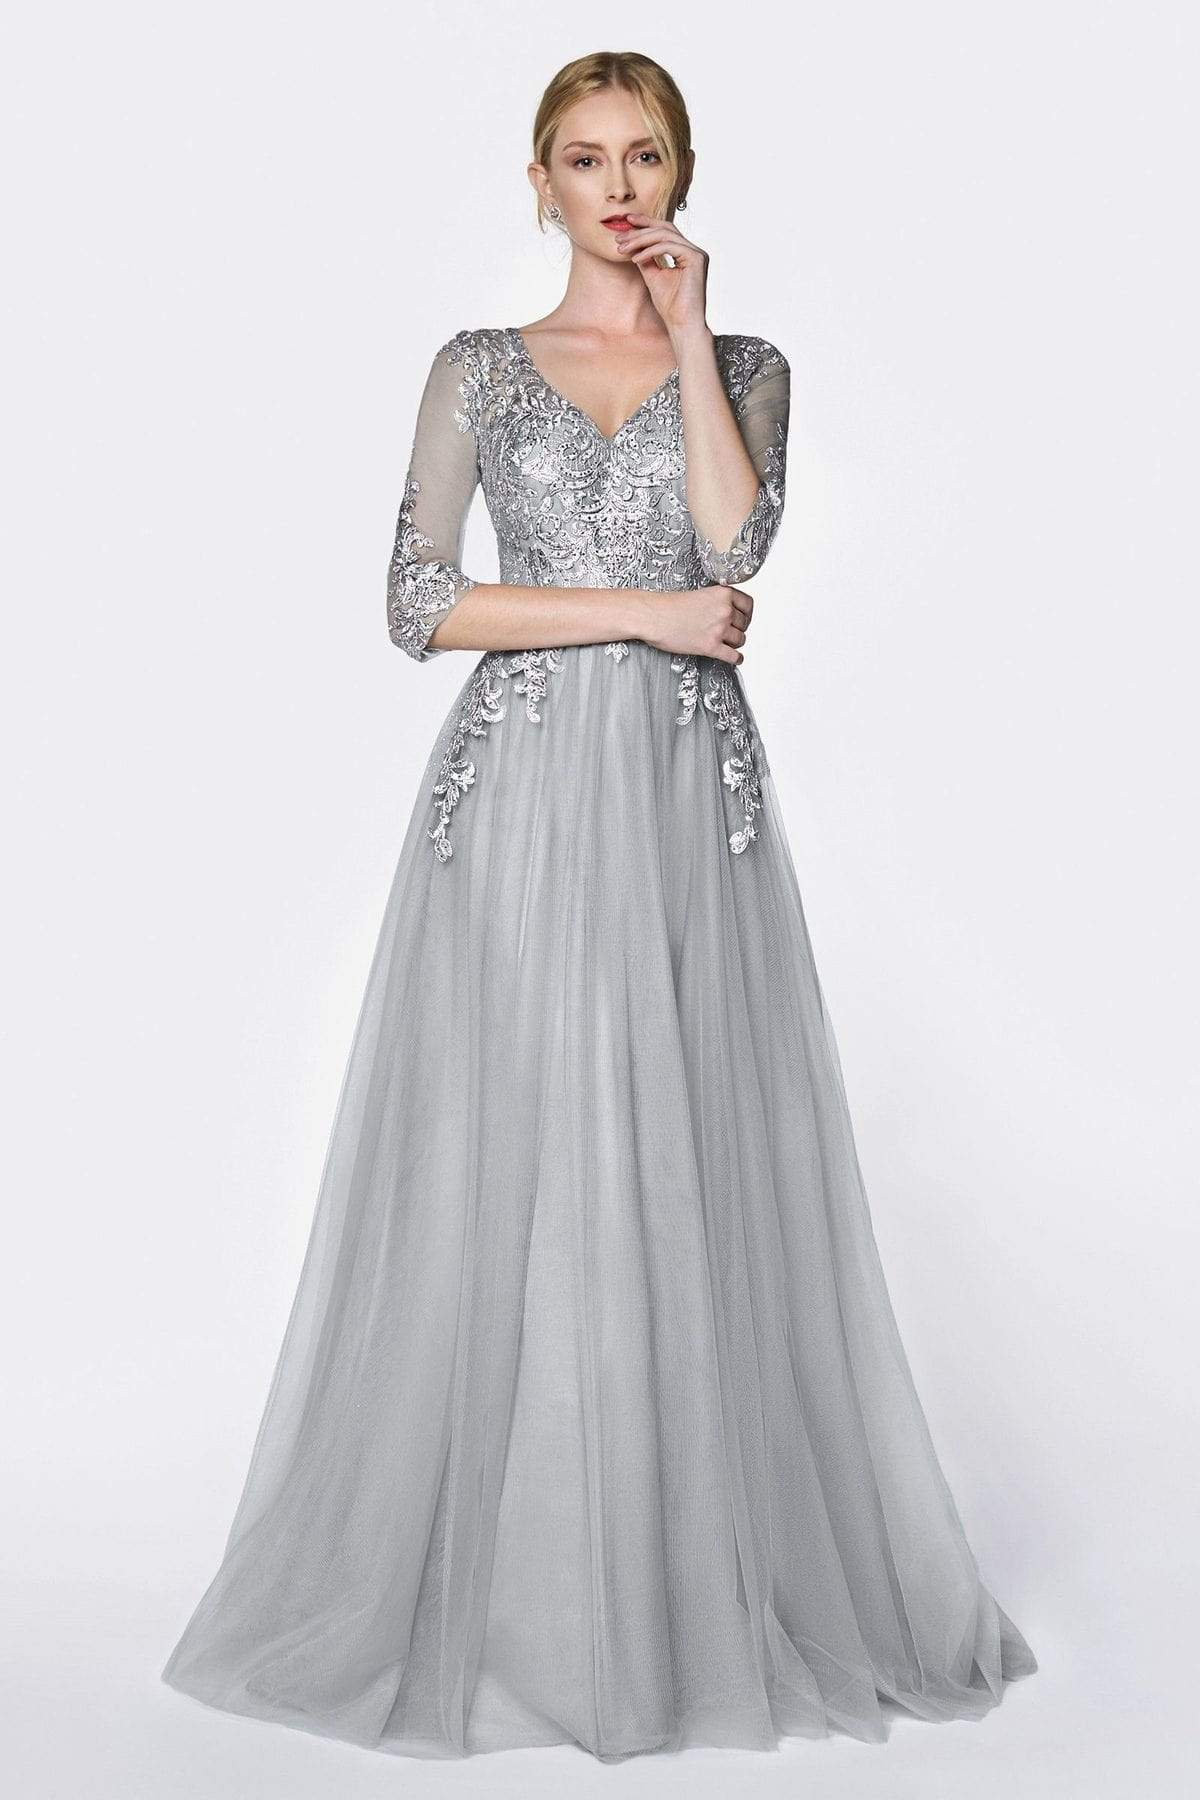 Cinderella Divine - OC003 Beaded Lace V-Neck Evening Dress Special Occasion Dress XS / Silver